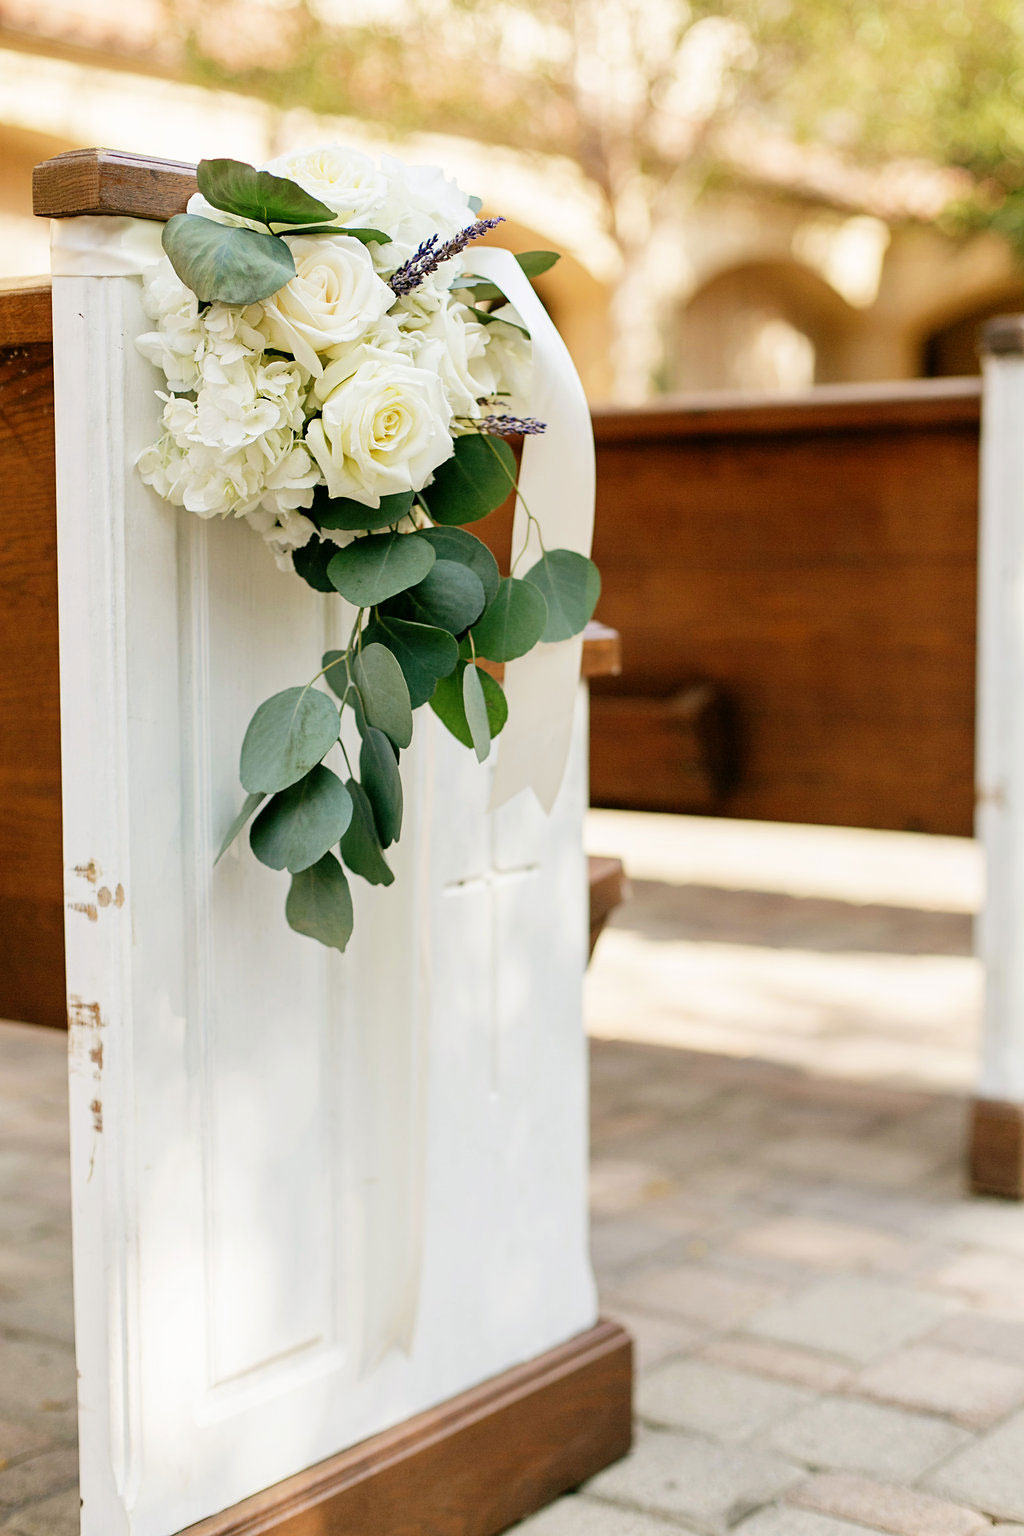 Wooden church pews in Serra Plaza Orange County Wedding